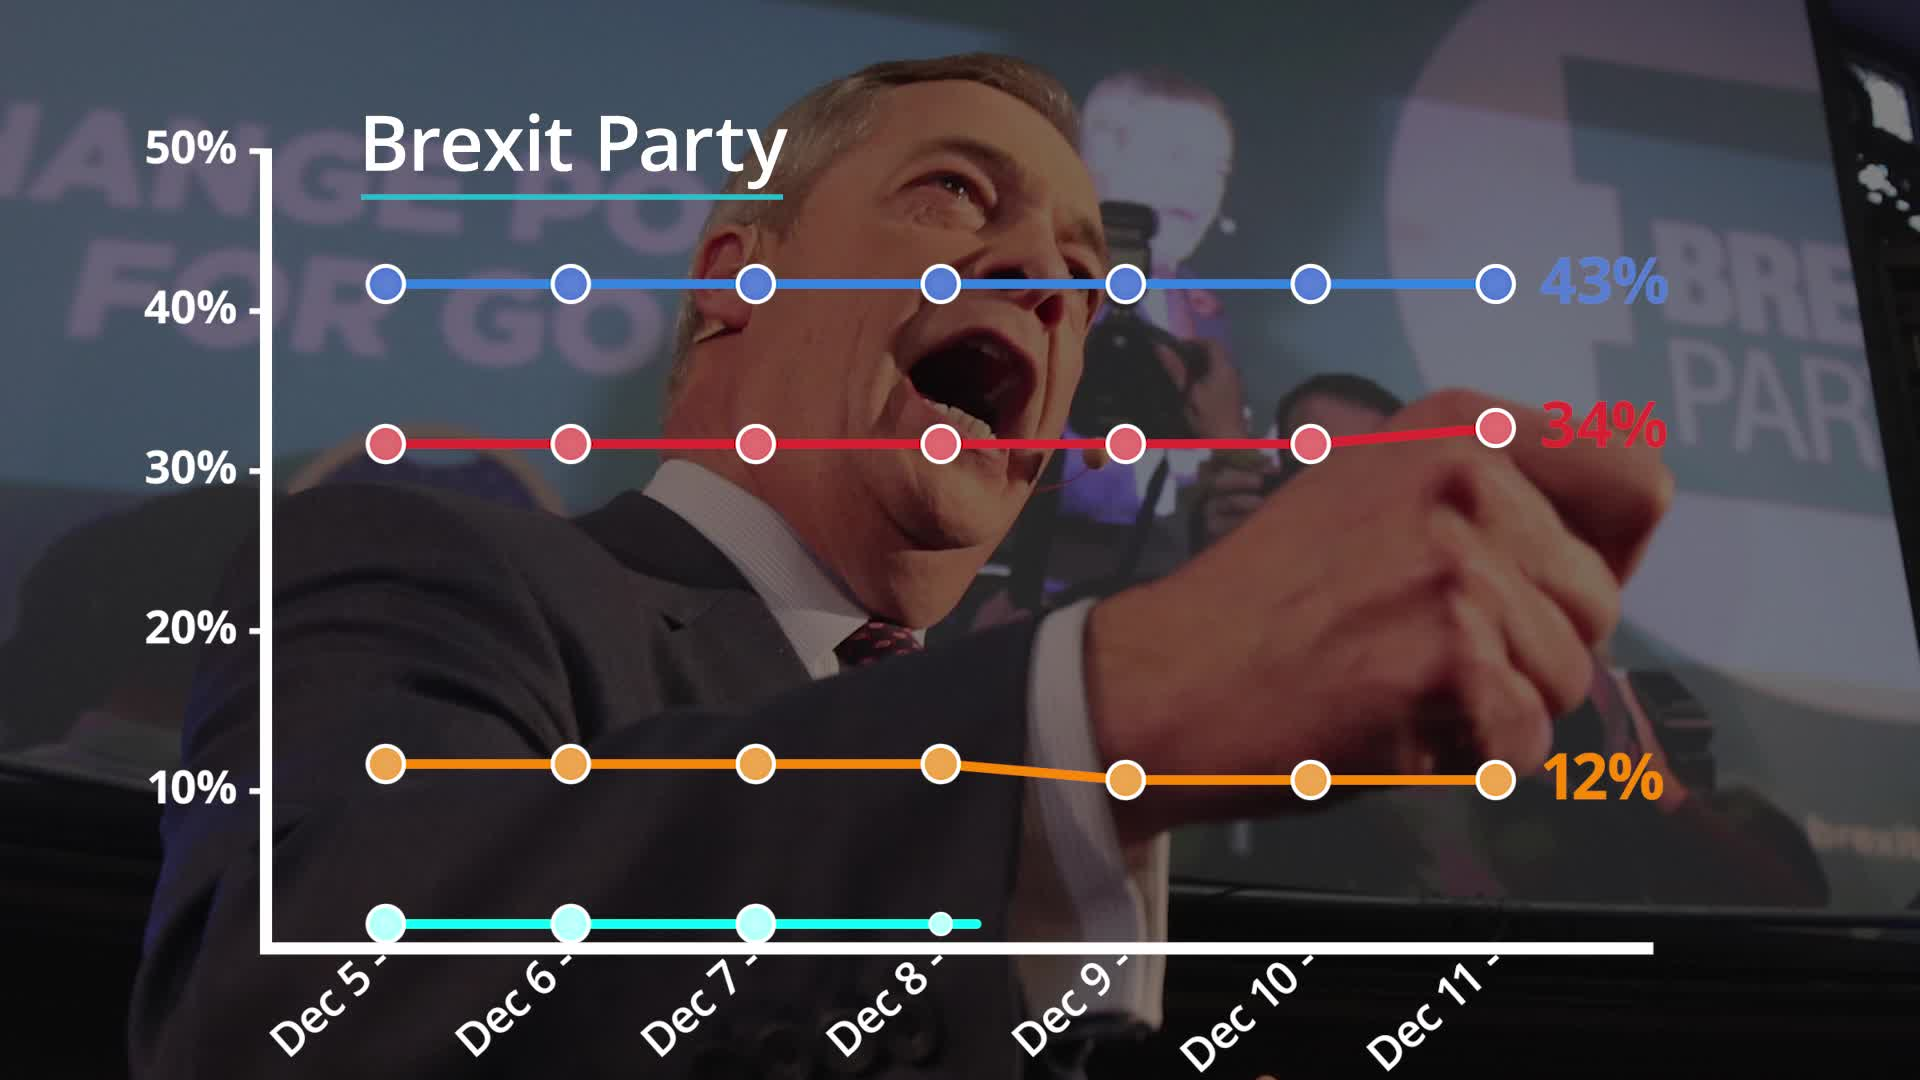 5 General Election 'Shocks' That Show The Expected Result Doesn't Always Happen